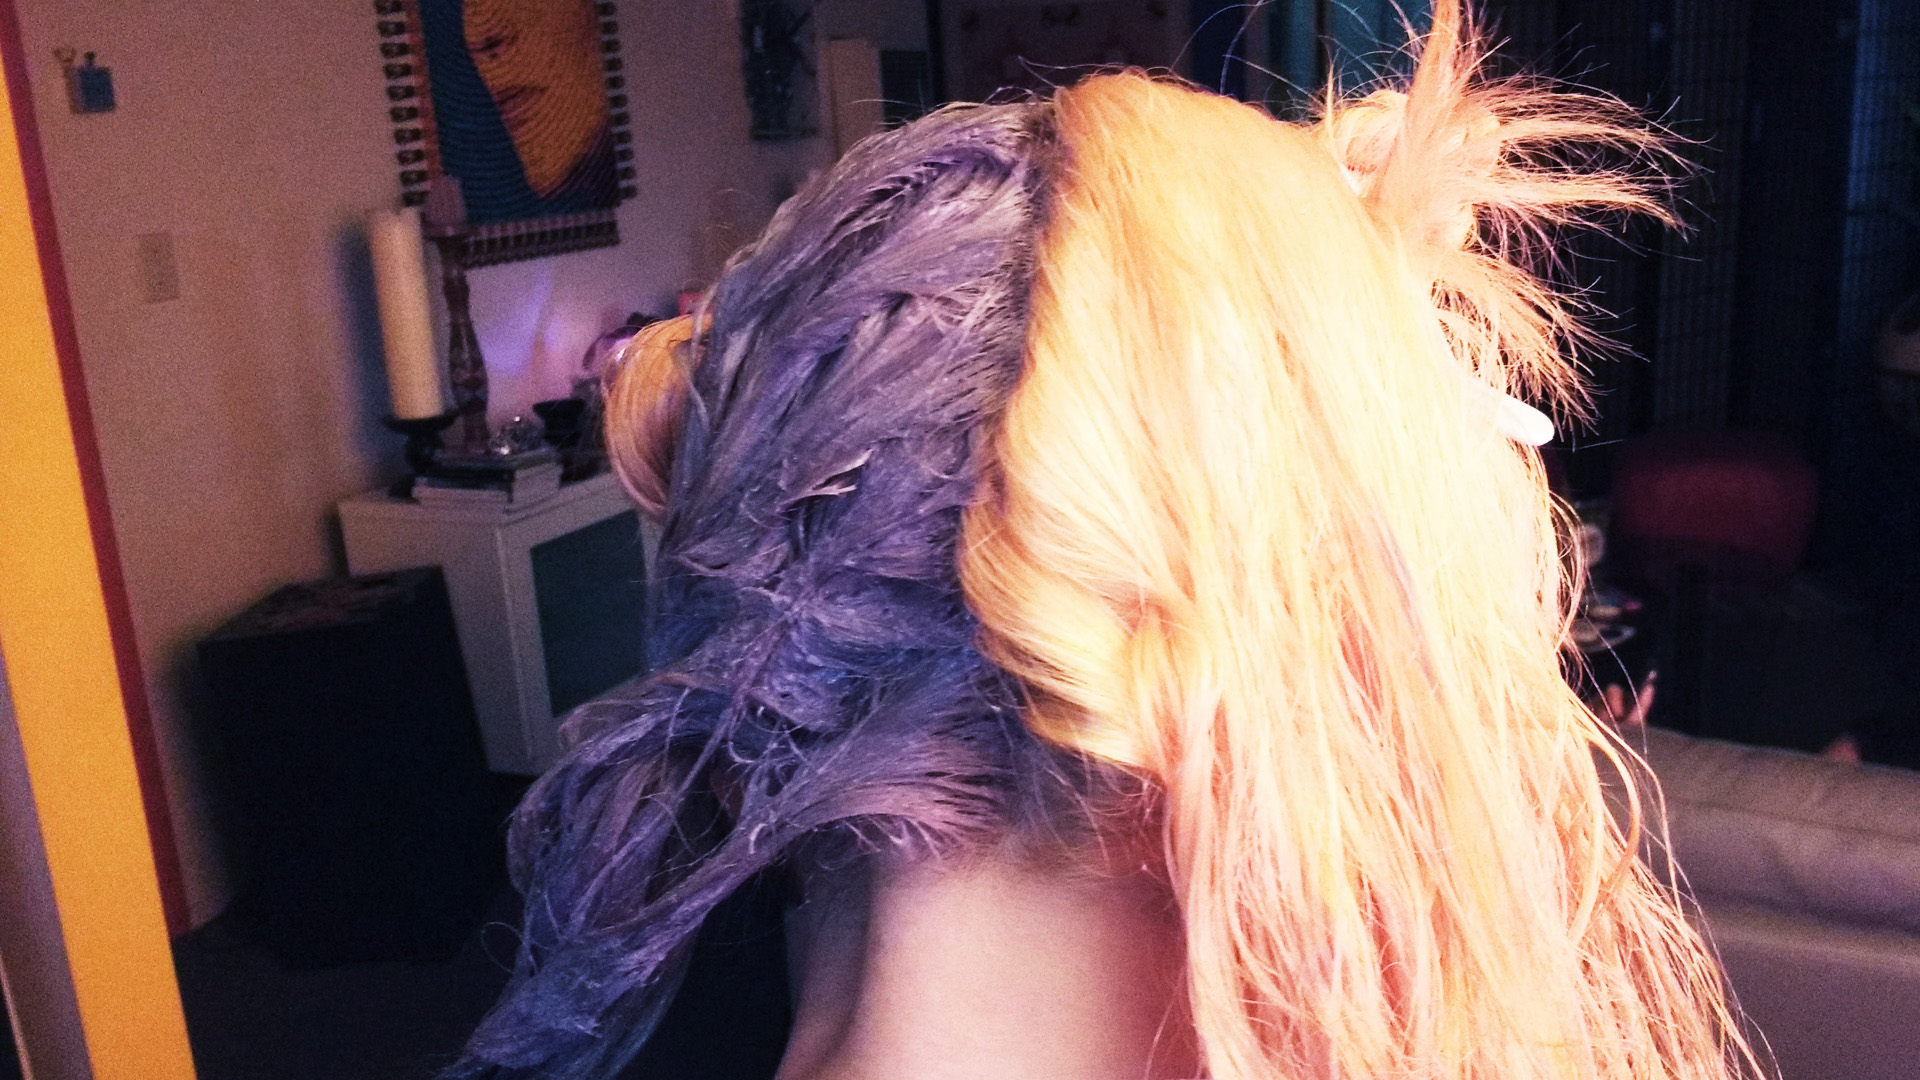 The back of Maya's head, sectioned in half and one half with sliver dye and one half still blonde